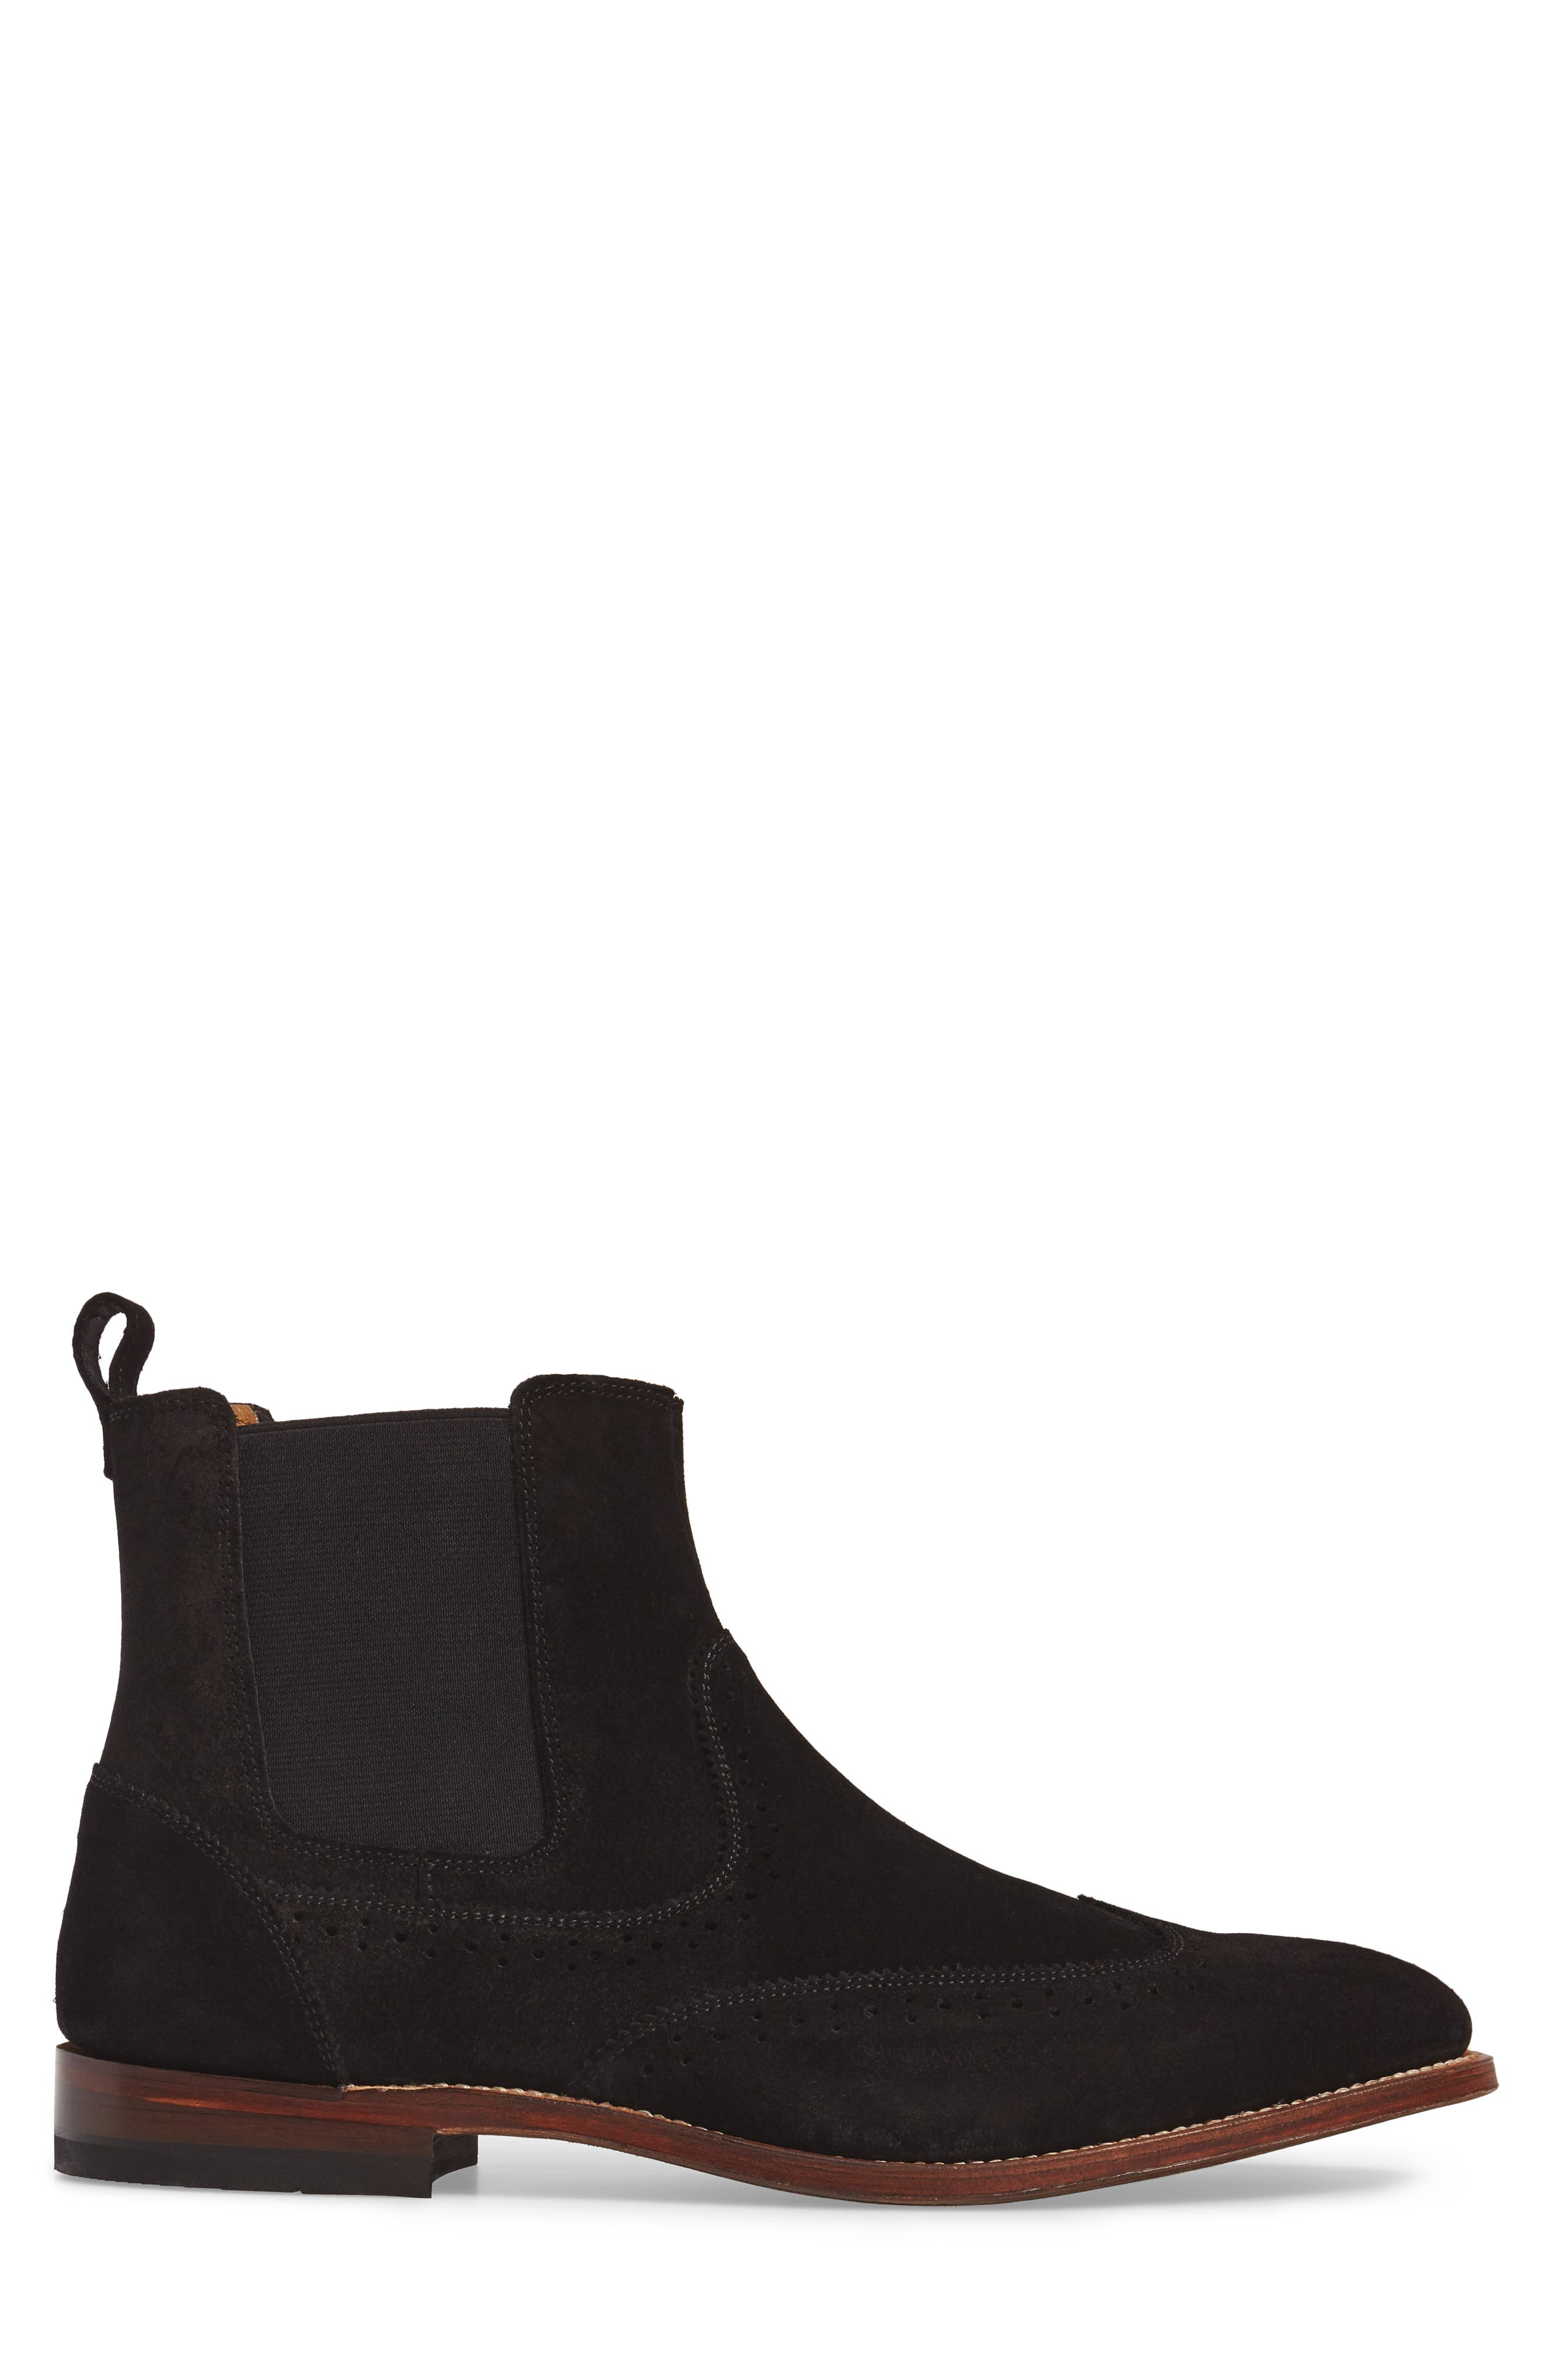 STACY ADAMS, Madison II Wingtip Chelsea Boot, Alternate thumbnail 3, color, BLACK SUEDE